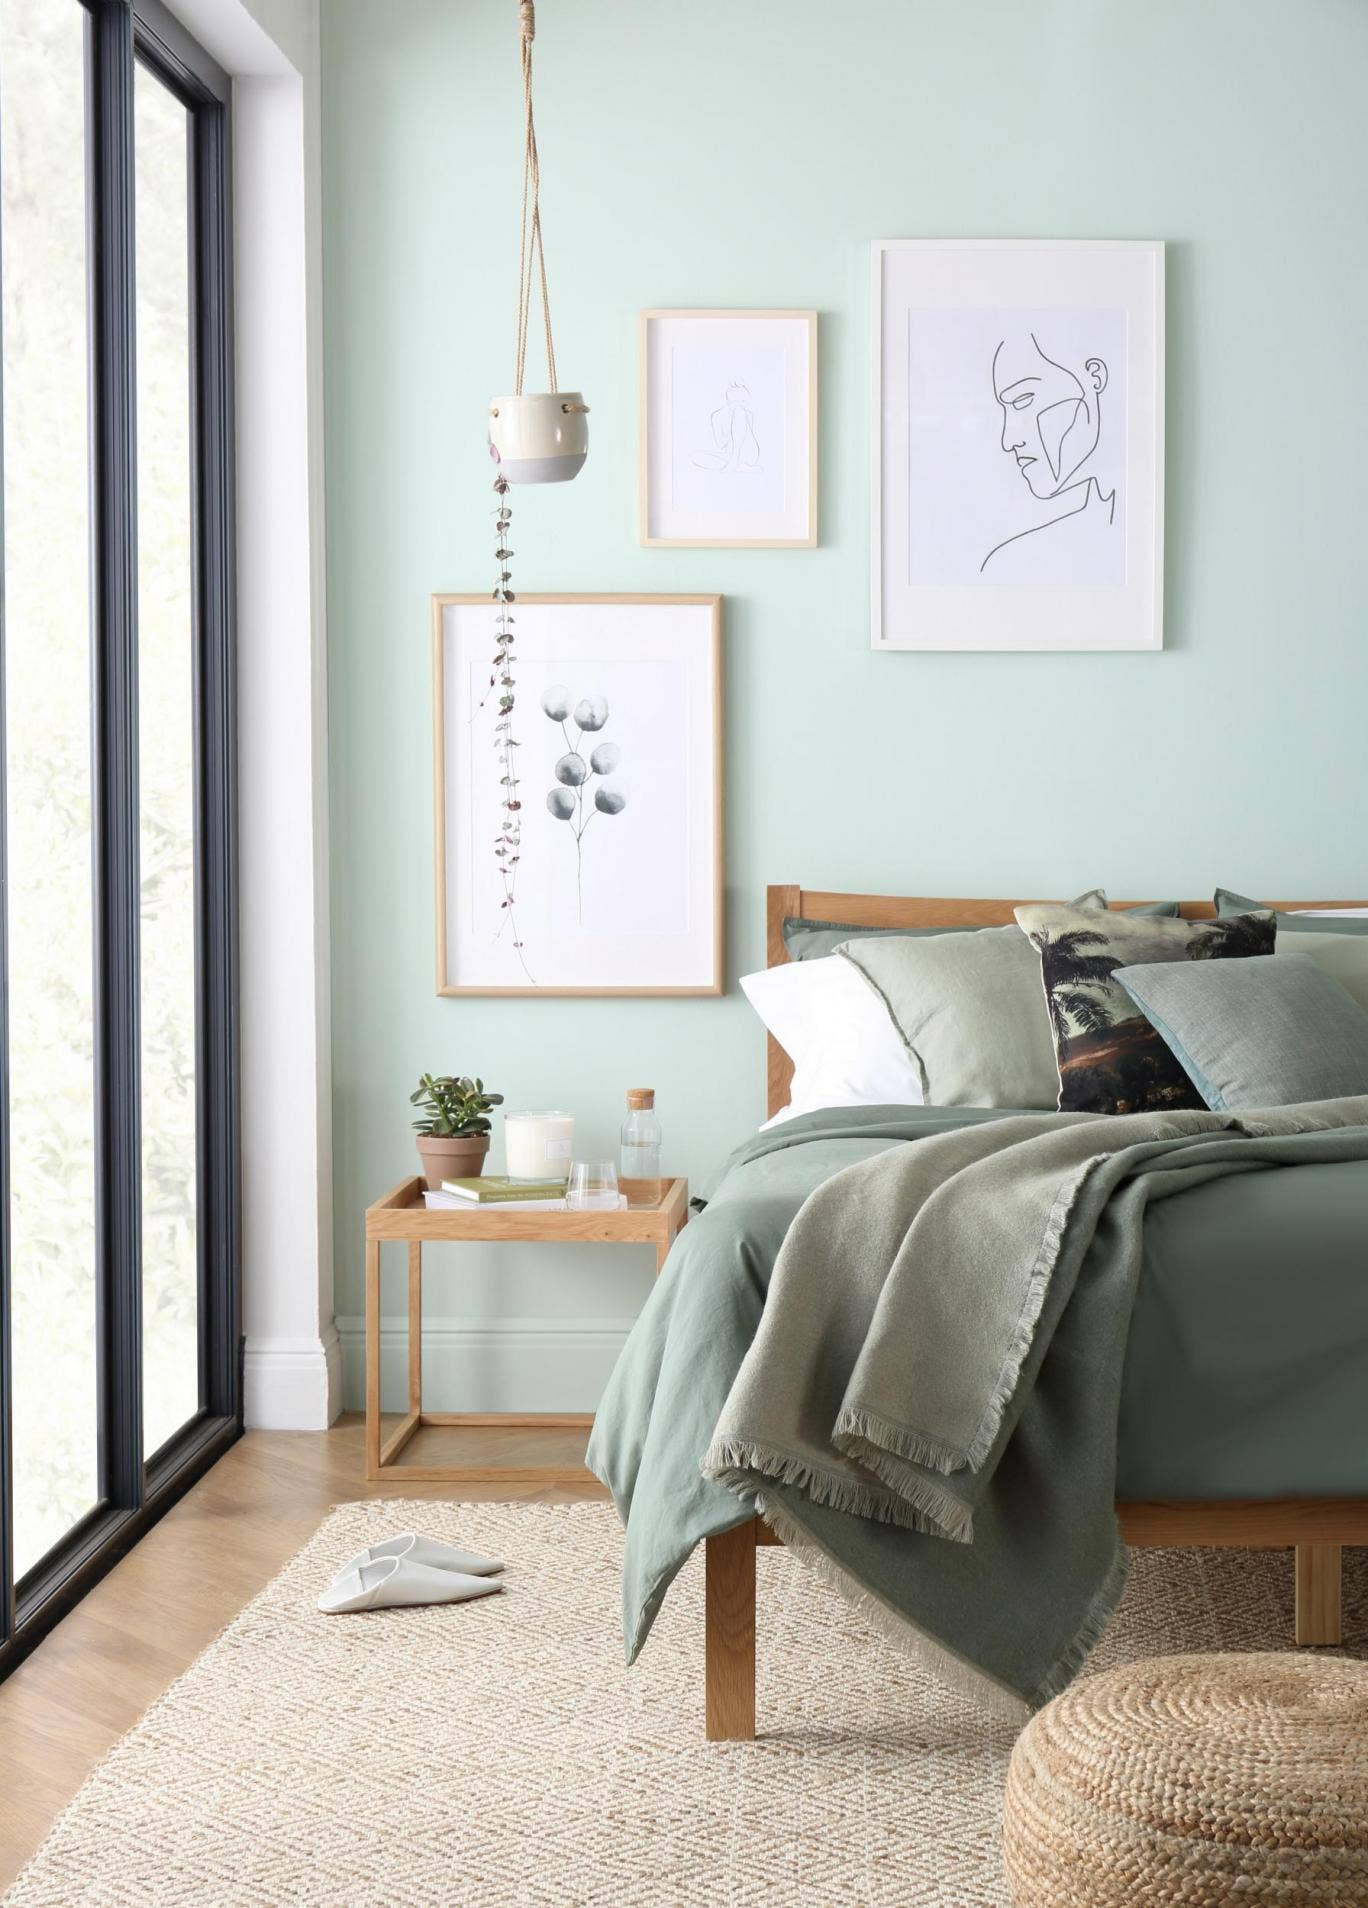 Dulux Tranquil Dawn - Paint Colour Trend 2020 - Colour of the year